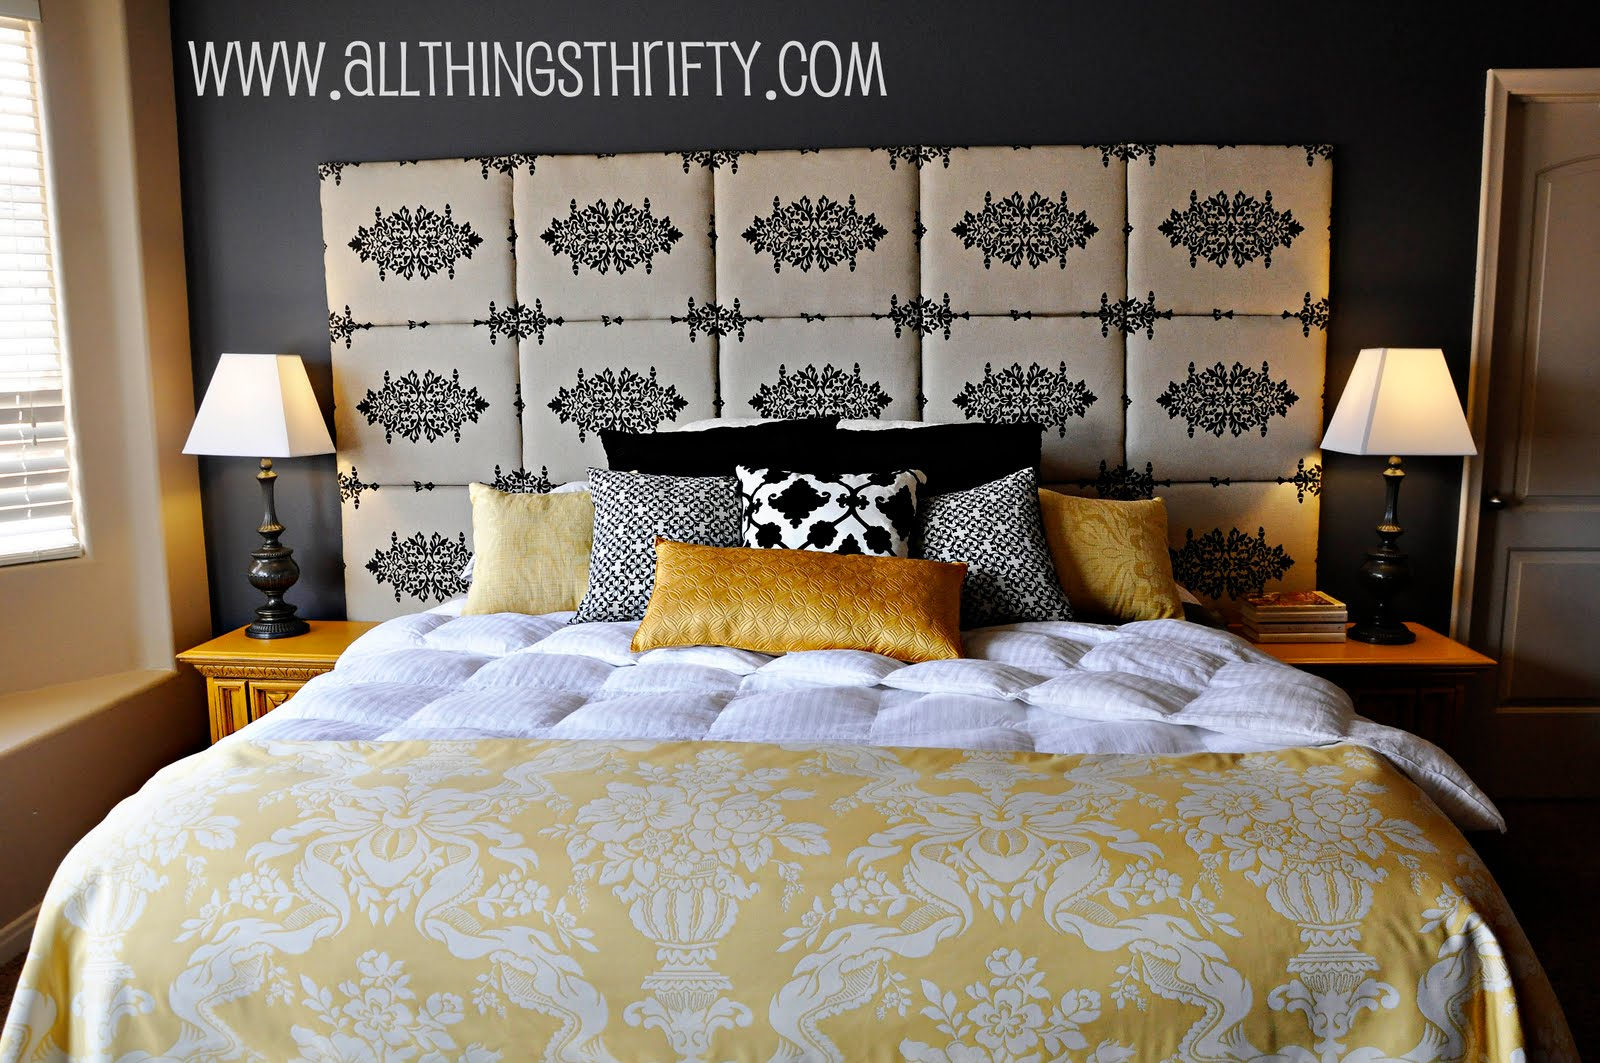 Useful Tutorial On How To Make A Fabric Headboard Cute Diy Projects